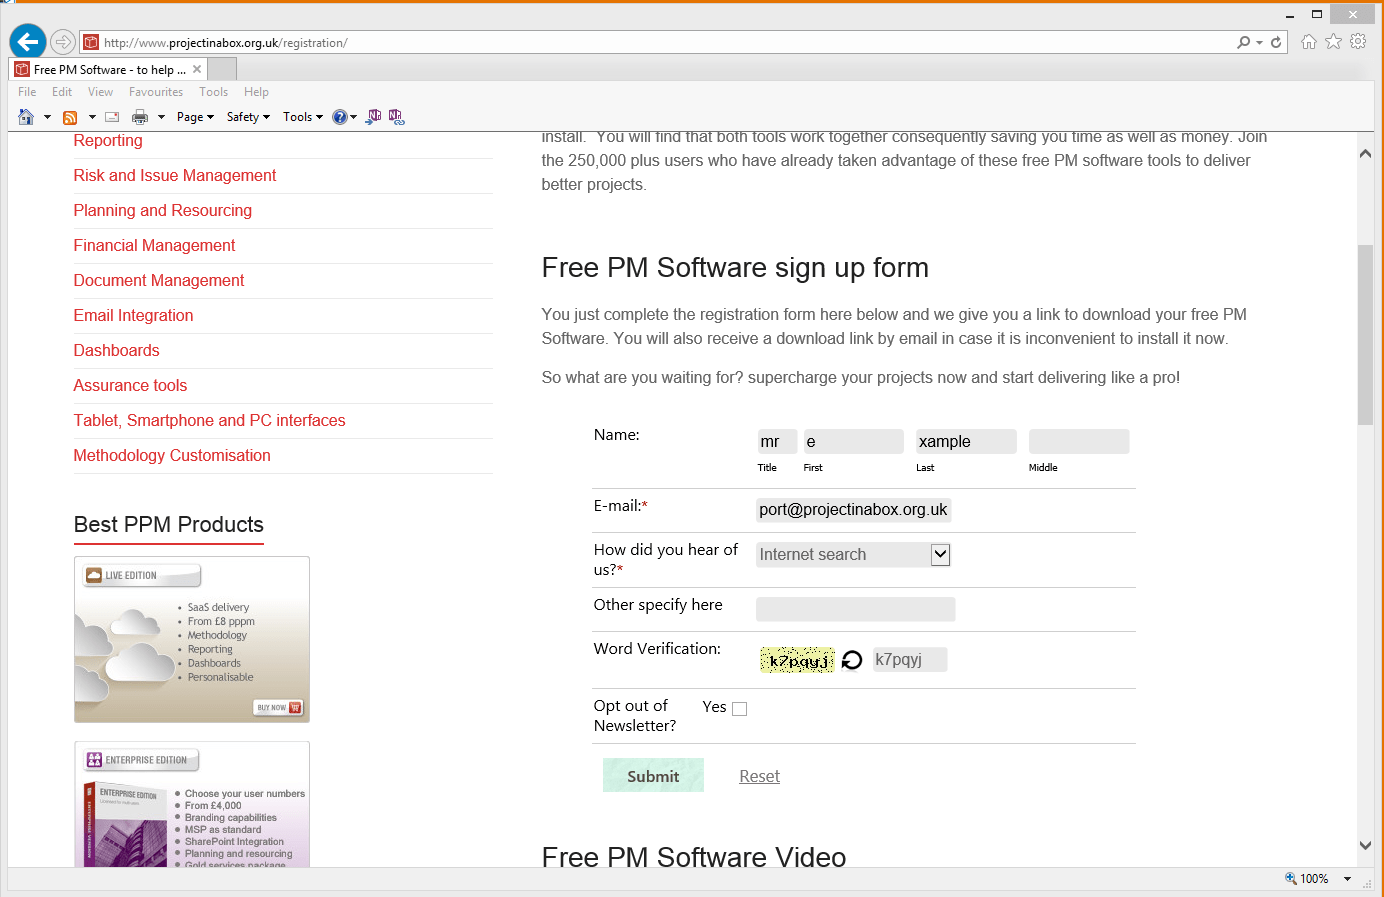 Free PM software